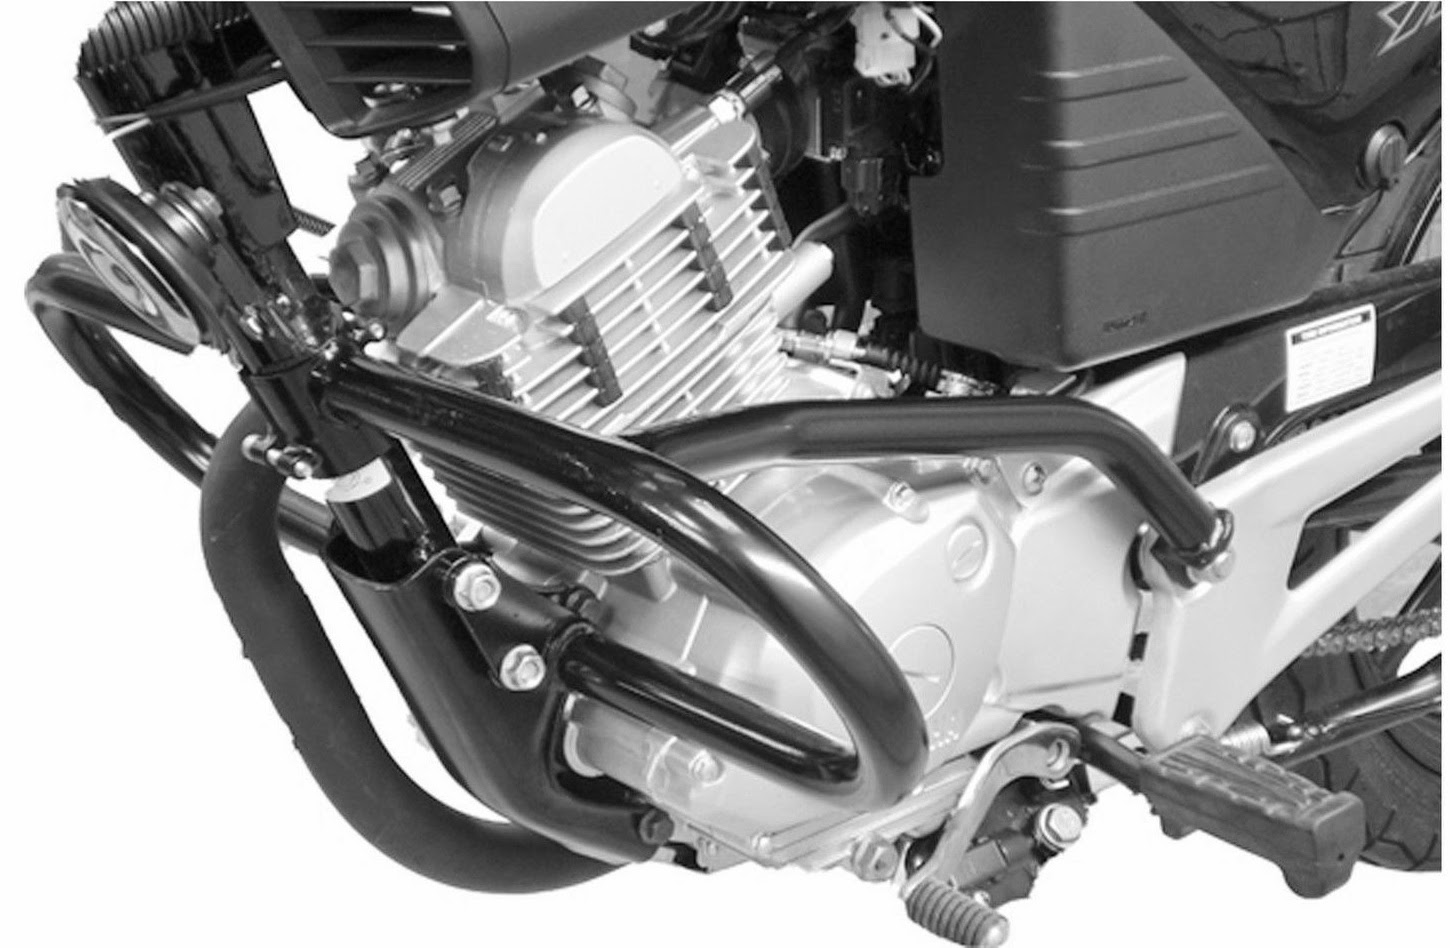 Yamaha YBR 125 Owner Blog : Yamaha YBR 125 electrical system ...